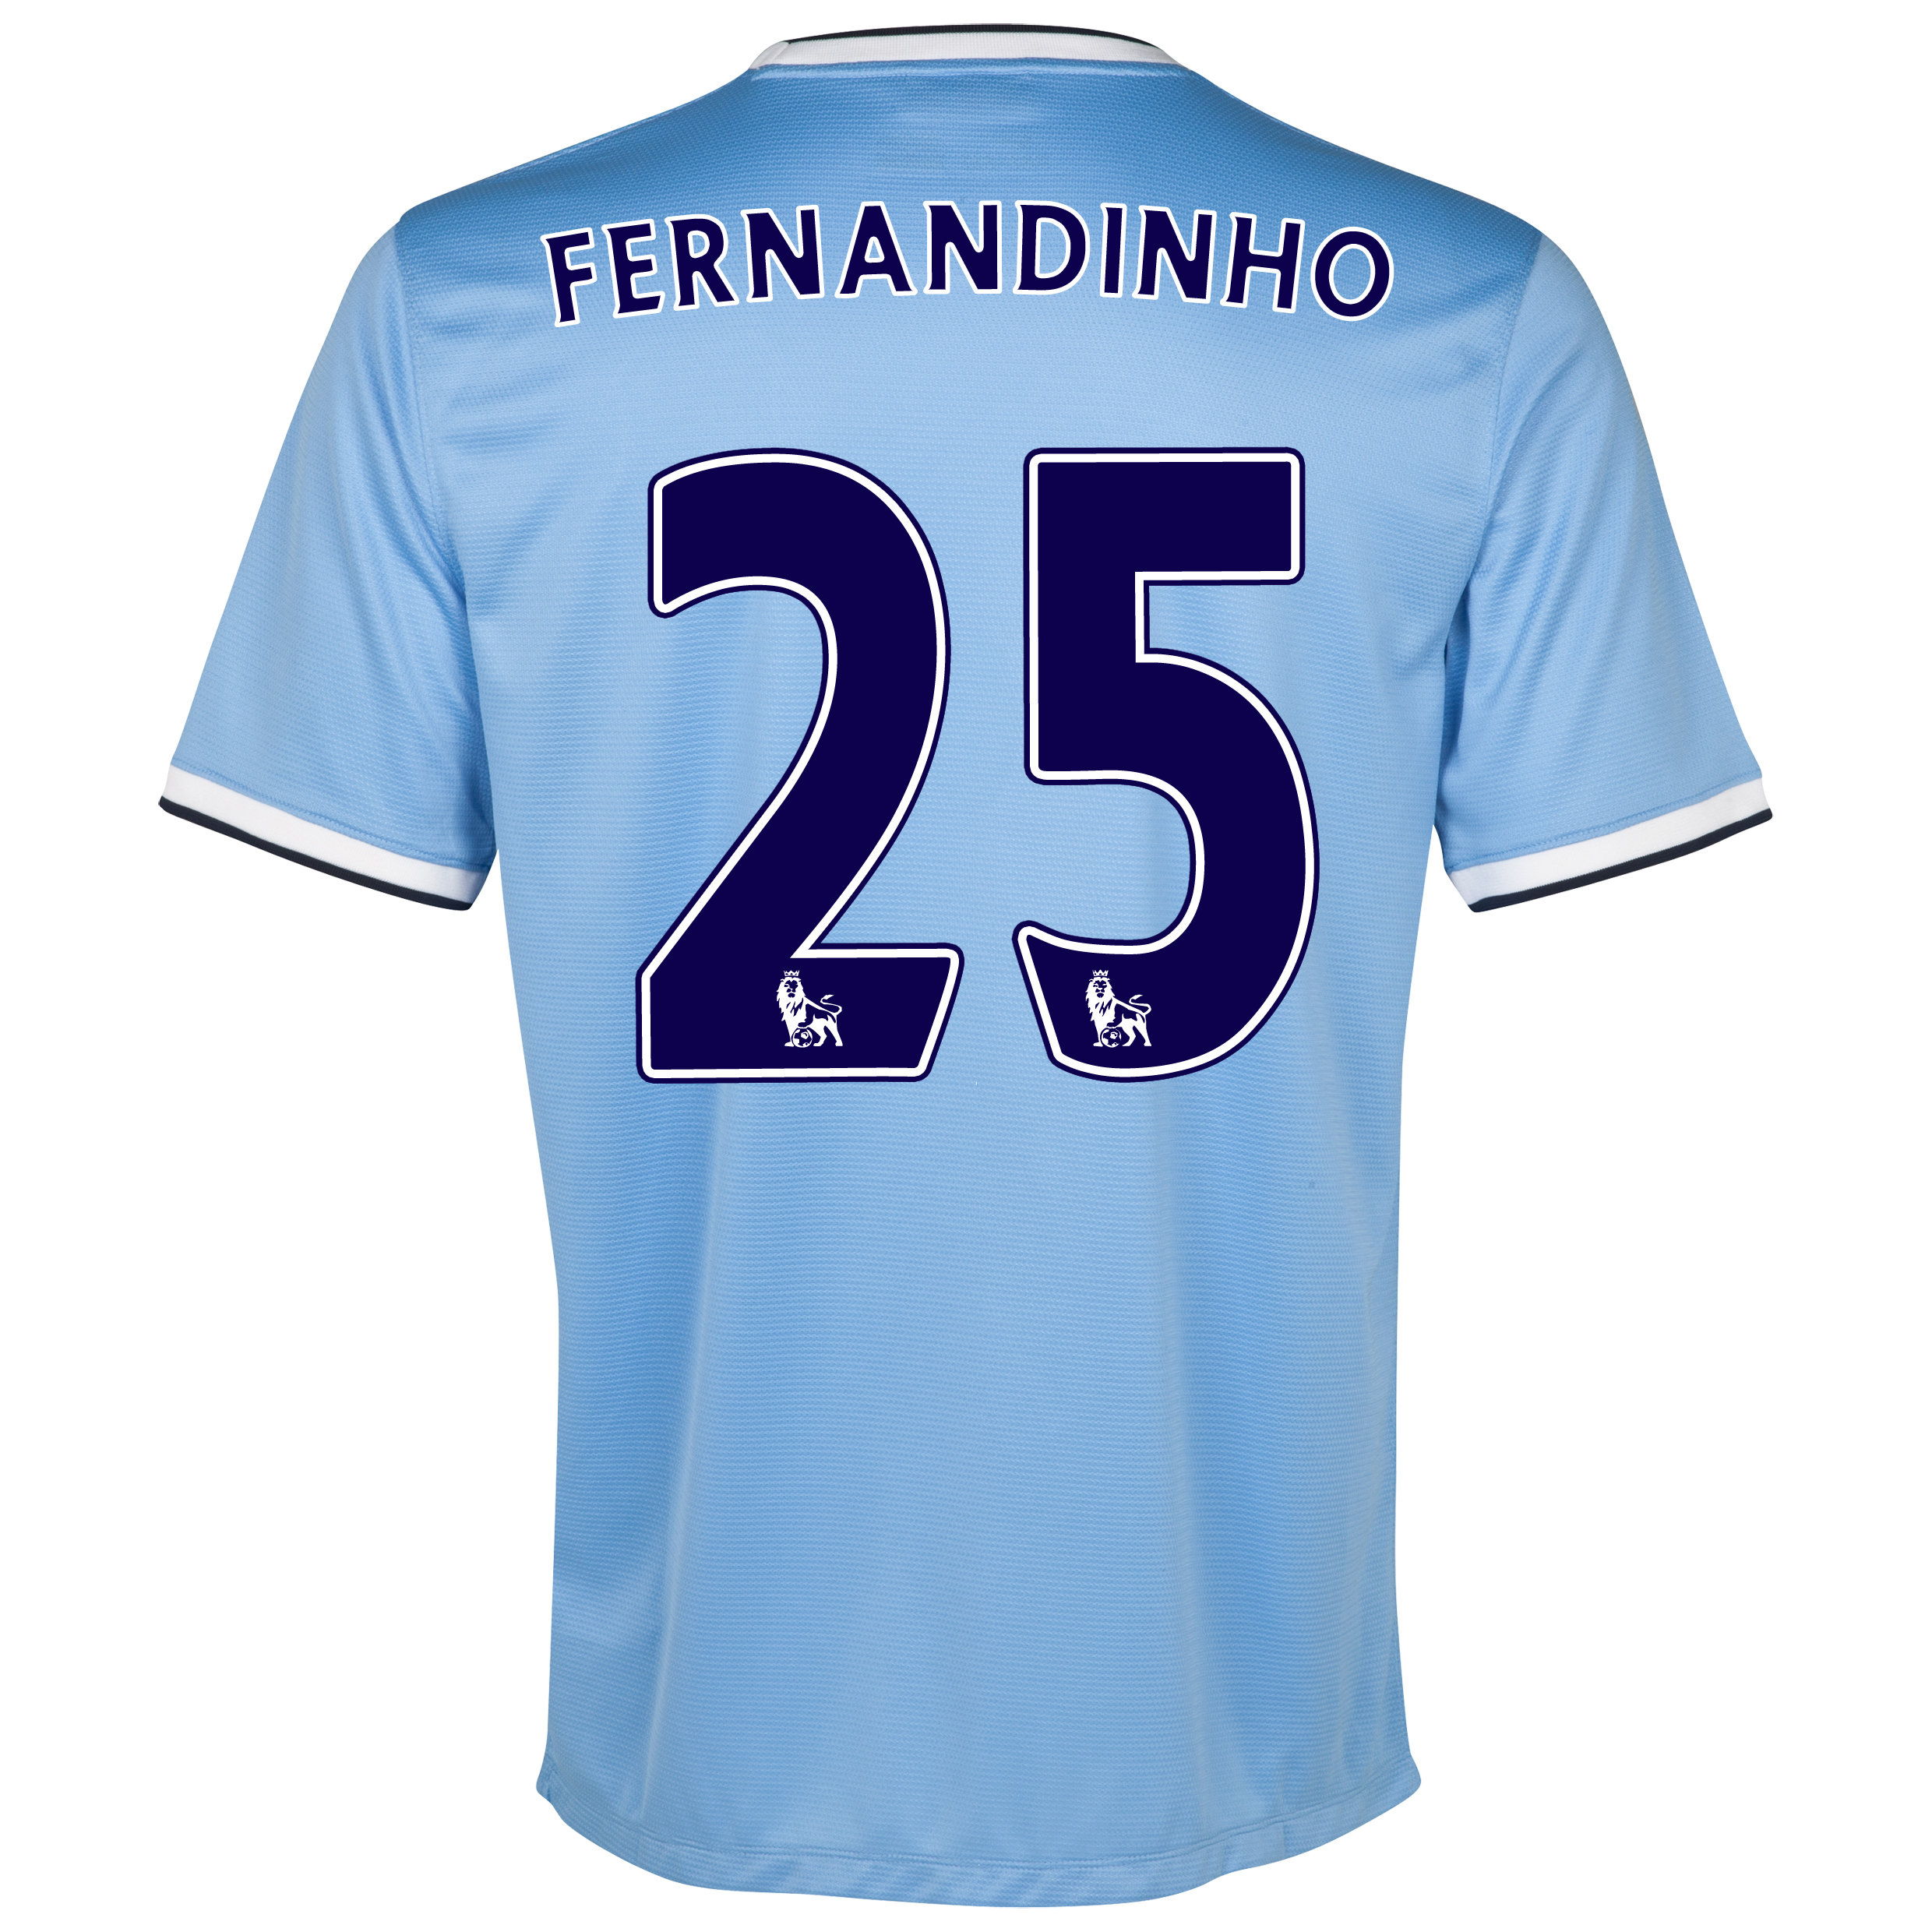 Manchester City Home Shirt 2013/14 - Junior with Fernandinho 25 printing